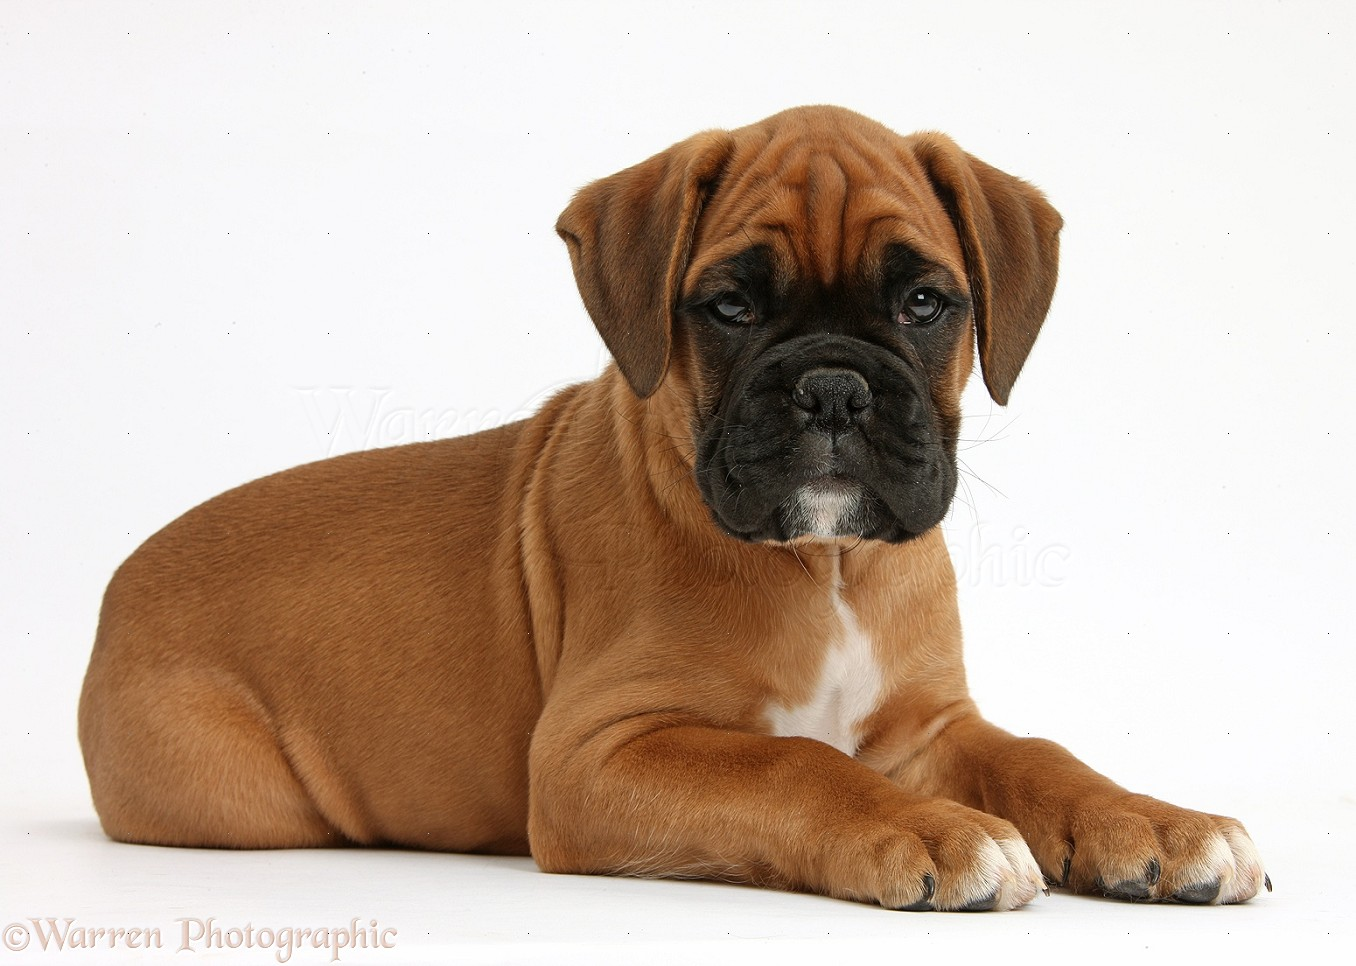 Dog Boxer Puppy Photo Wp38169